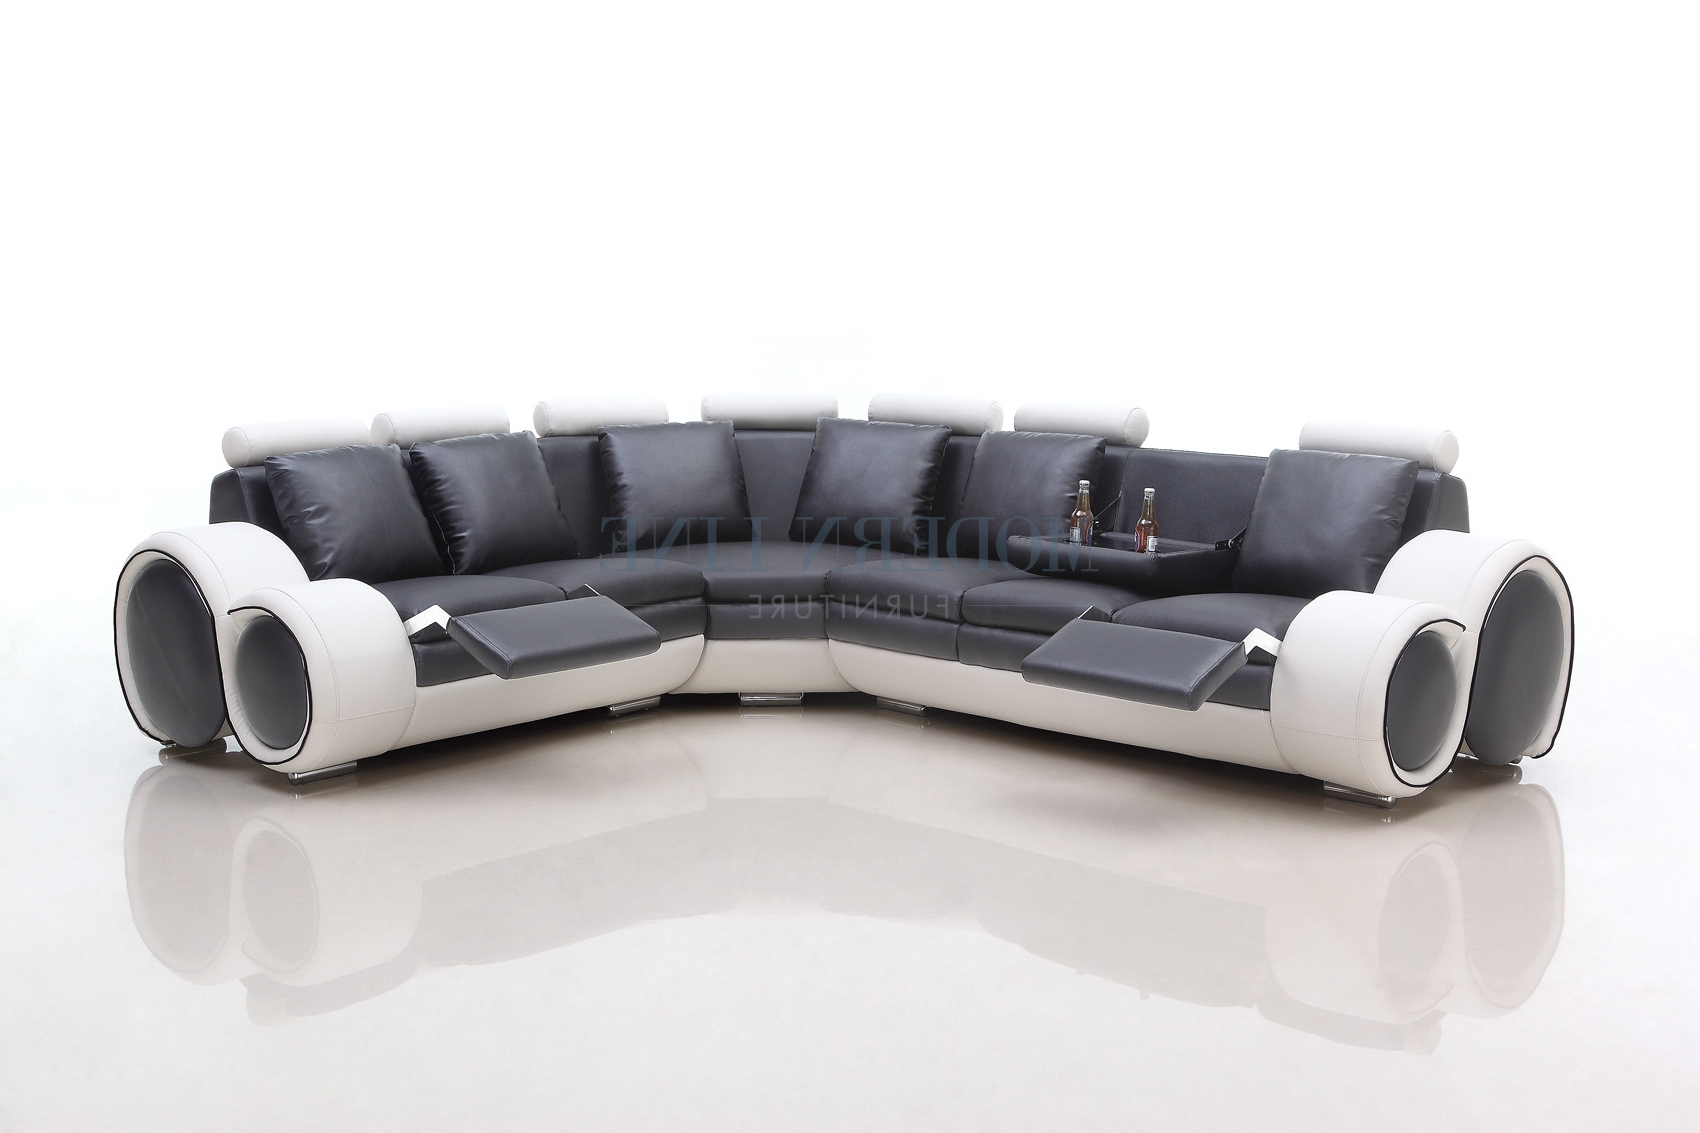 Picture of: View Photos Of Sectional Sofas With Consoles Showing 11 Of 20 Photos